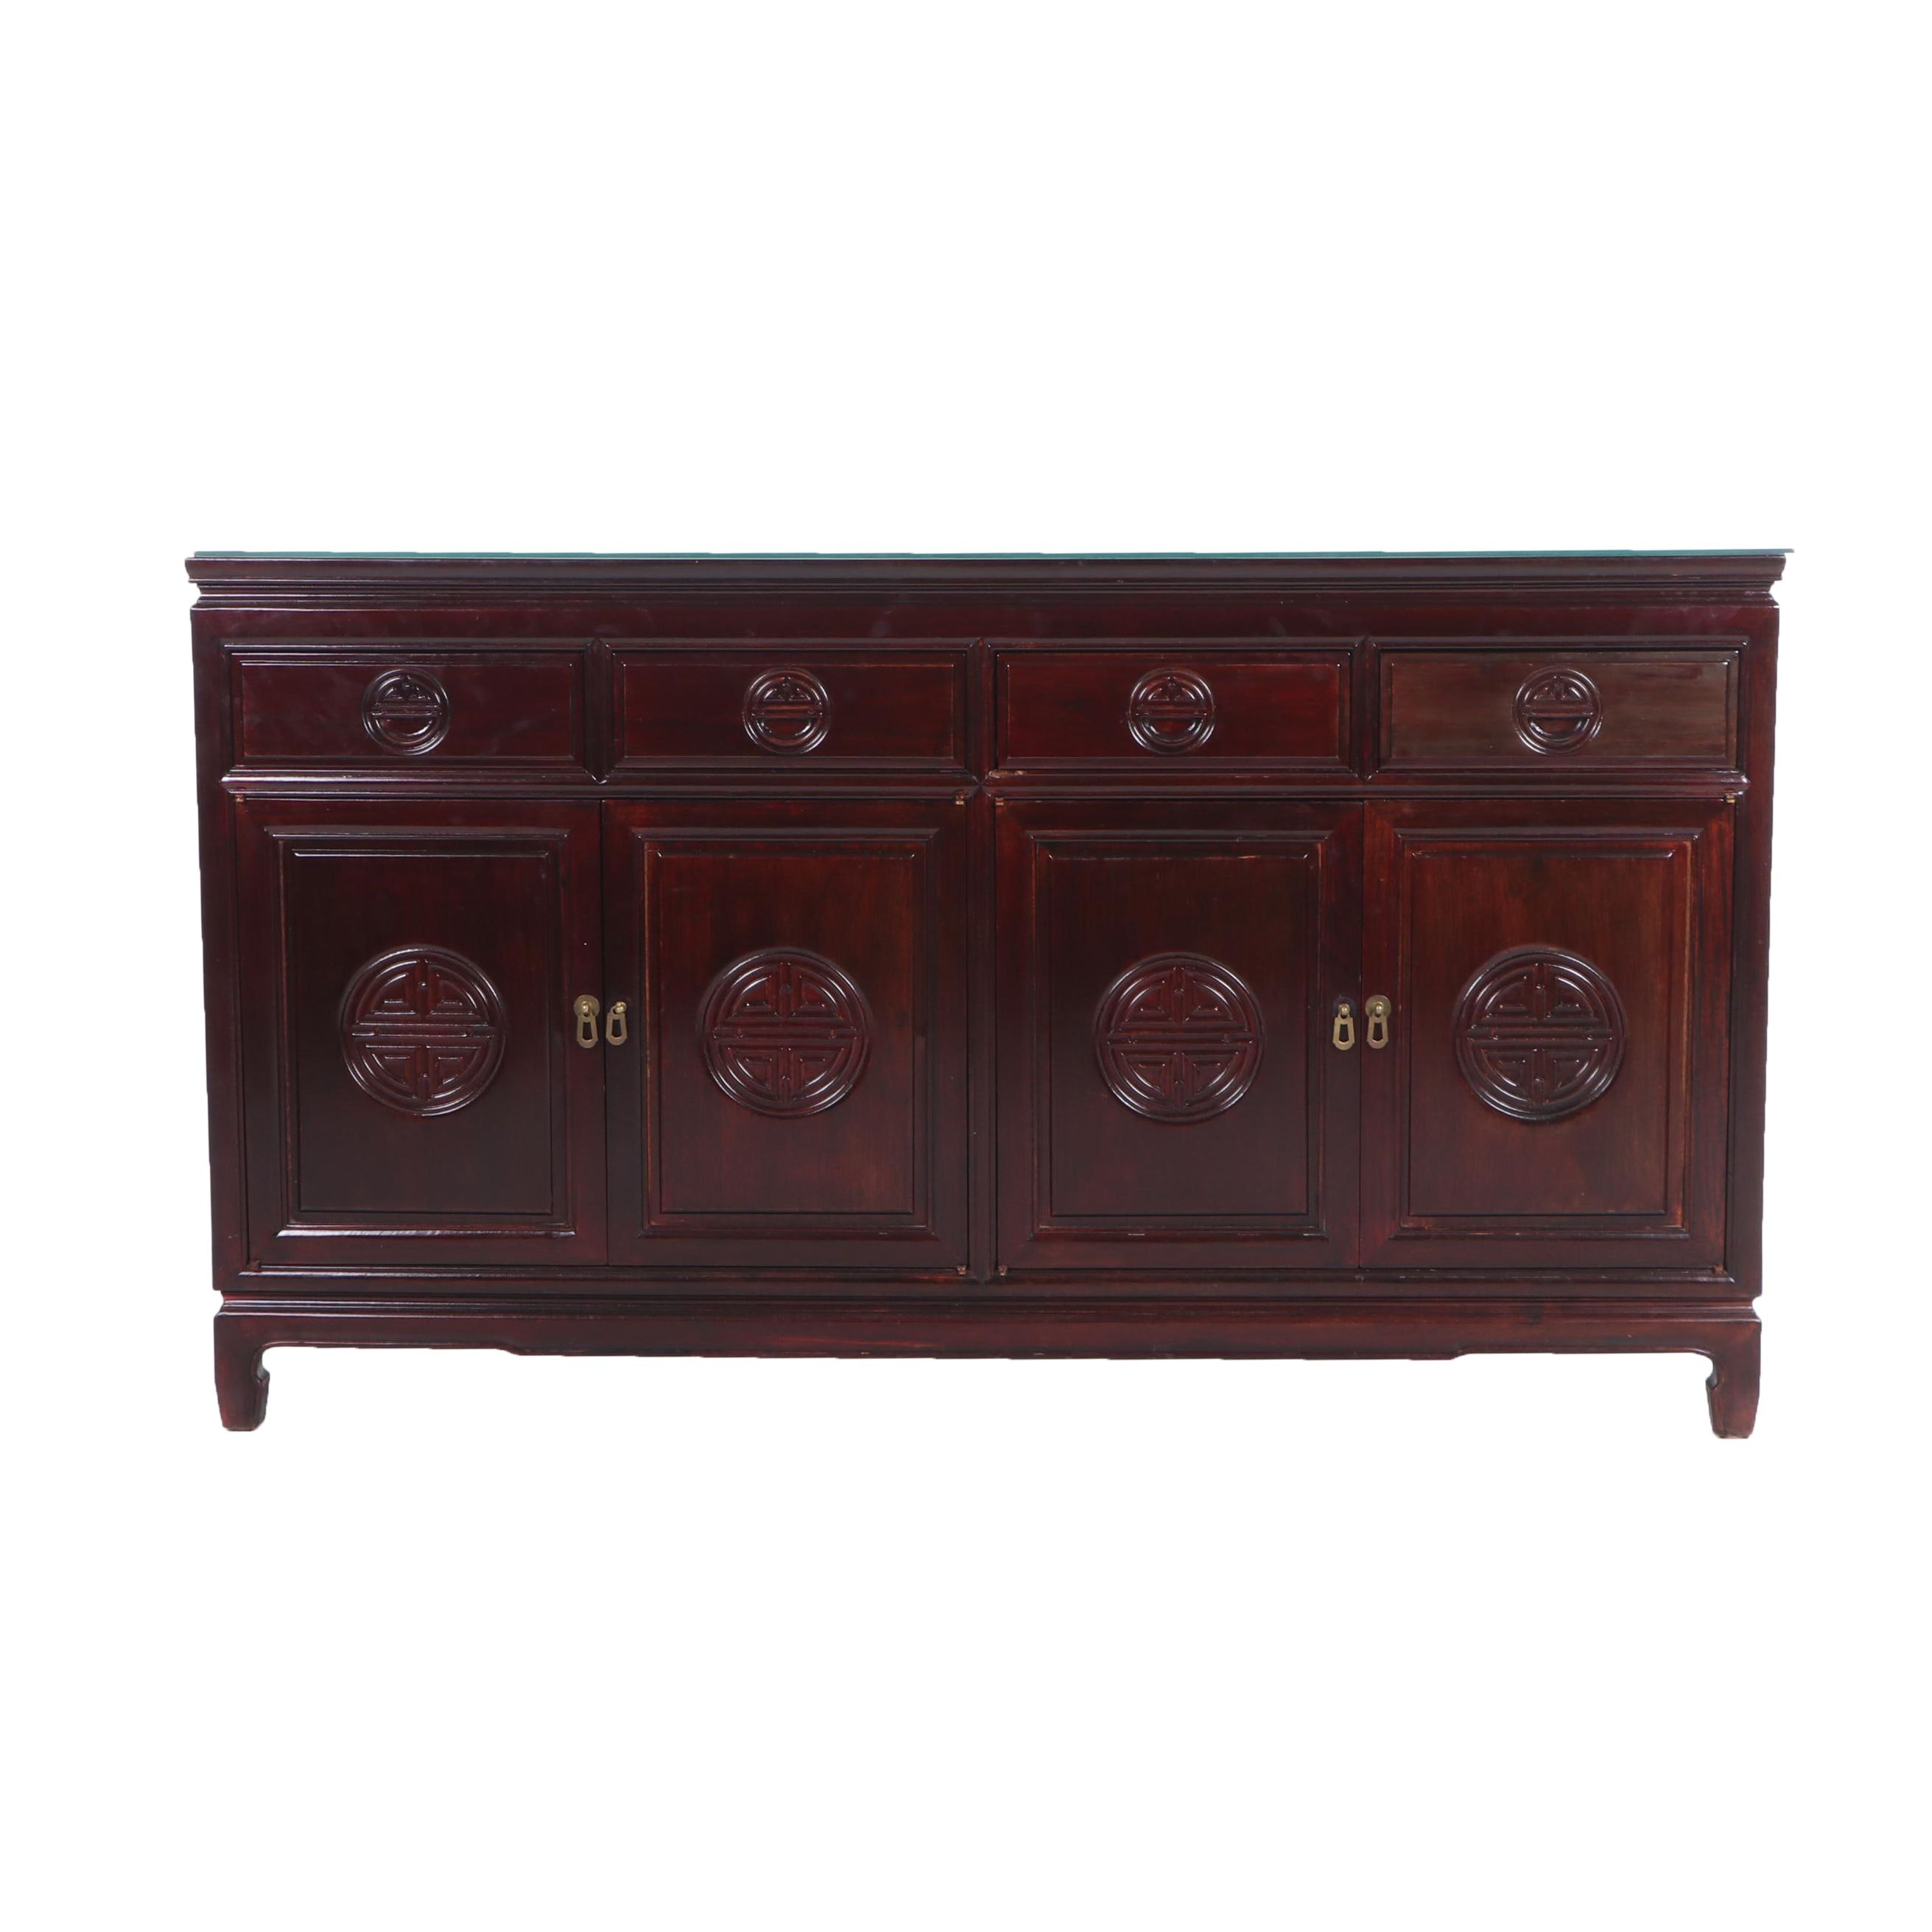 Chinese Inspired Lacquered Wood Sideboard, Contemporary